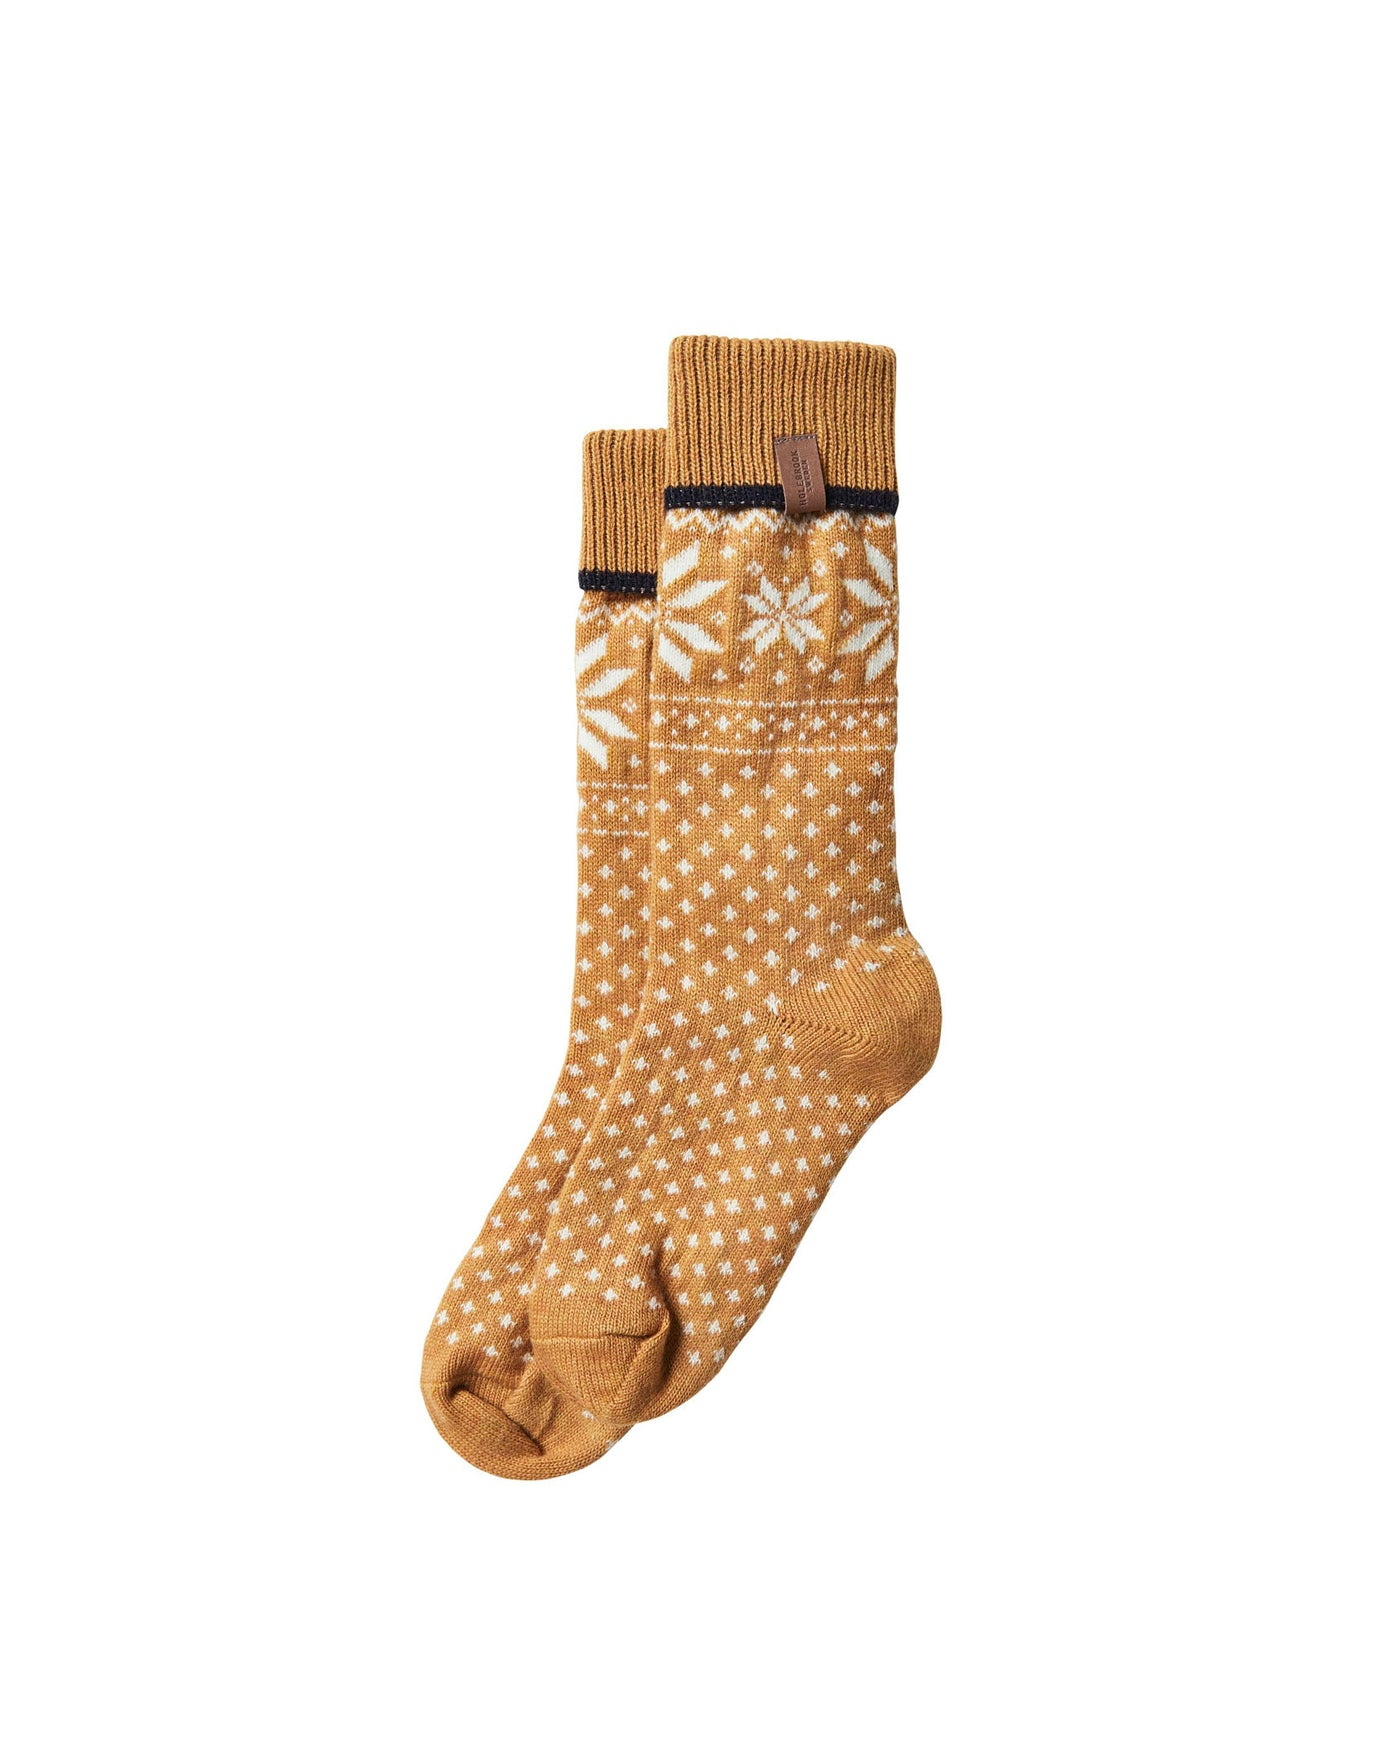 HOLEBROOK Fairisle Raggsocka Knitted socks